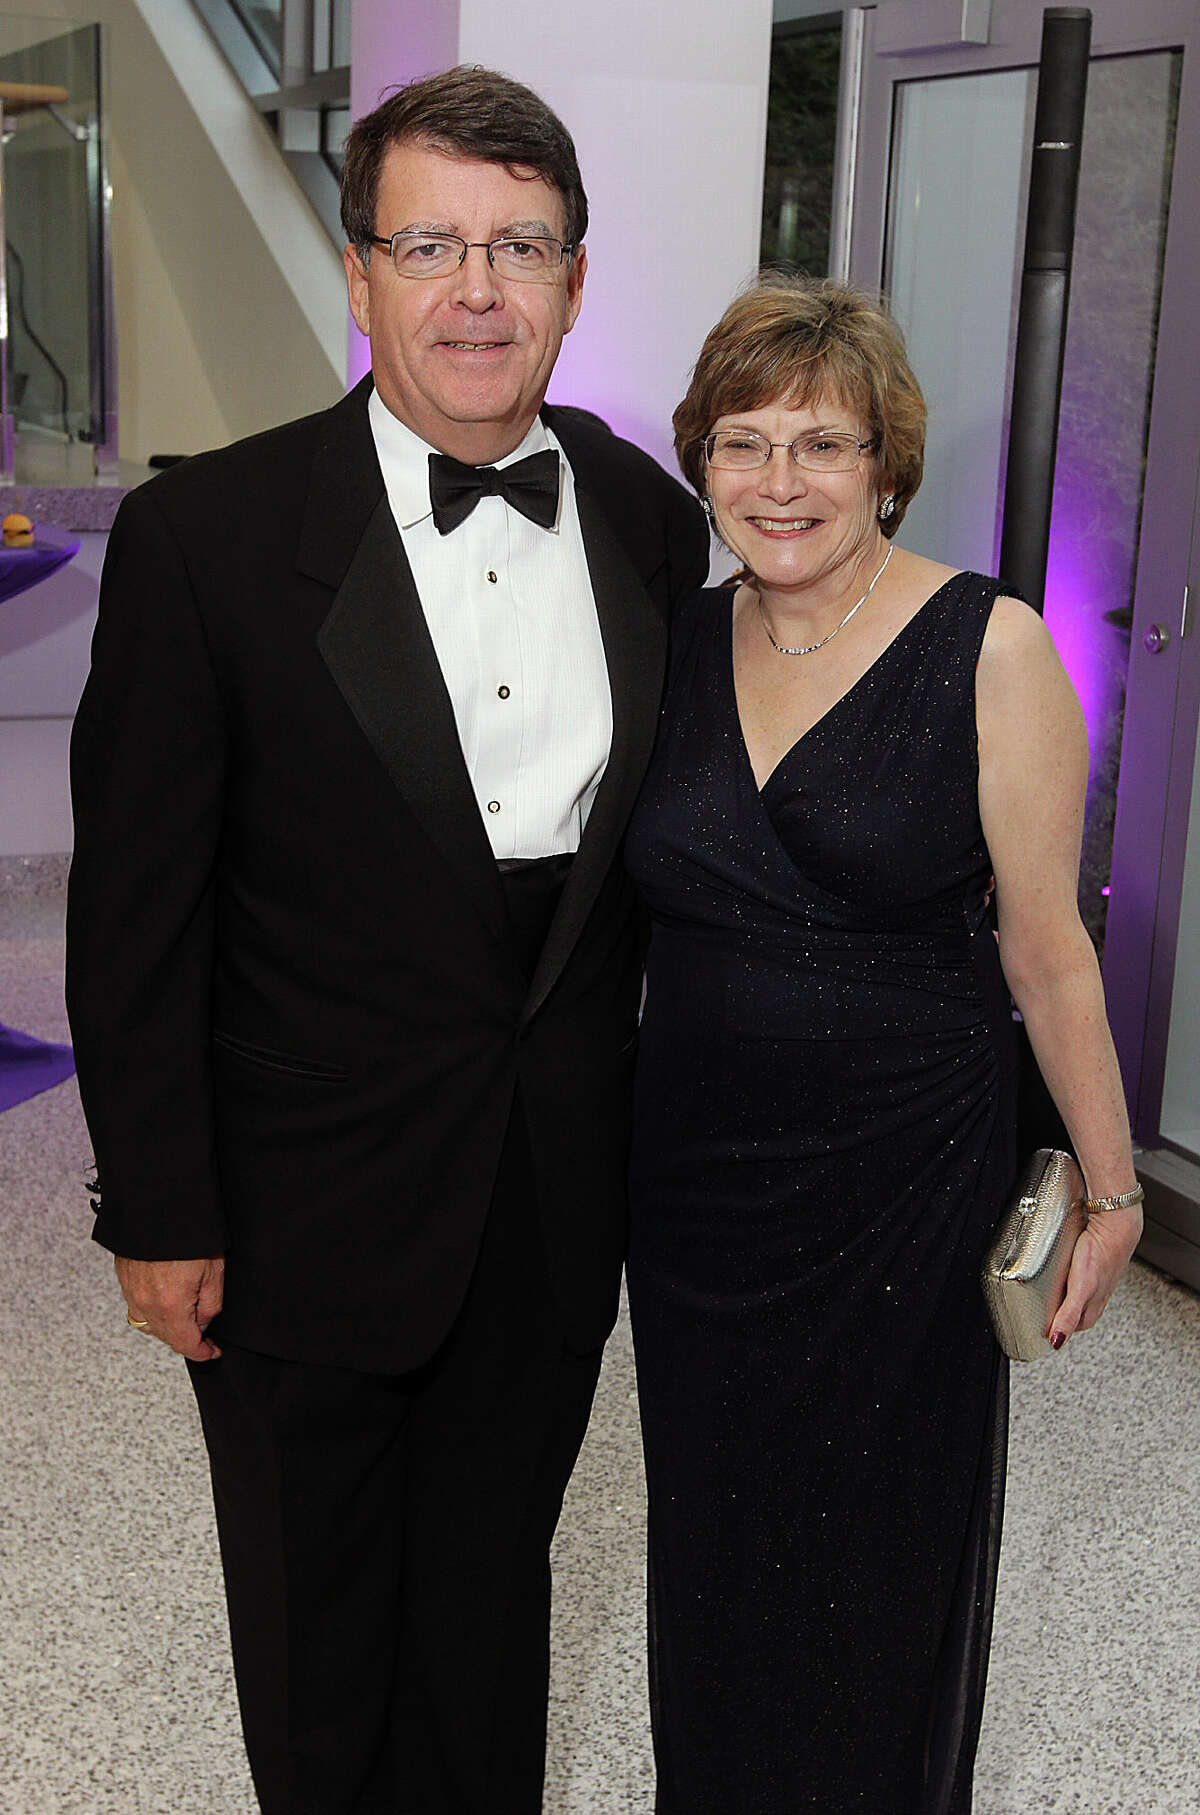 Were you Seen at the Inauguration Black Tie Dinner to benefit student scholarships at the School of Business building at UAlbany on Friday, Sept. 27, 2013?